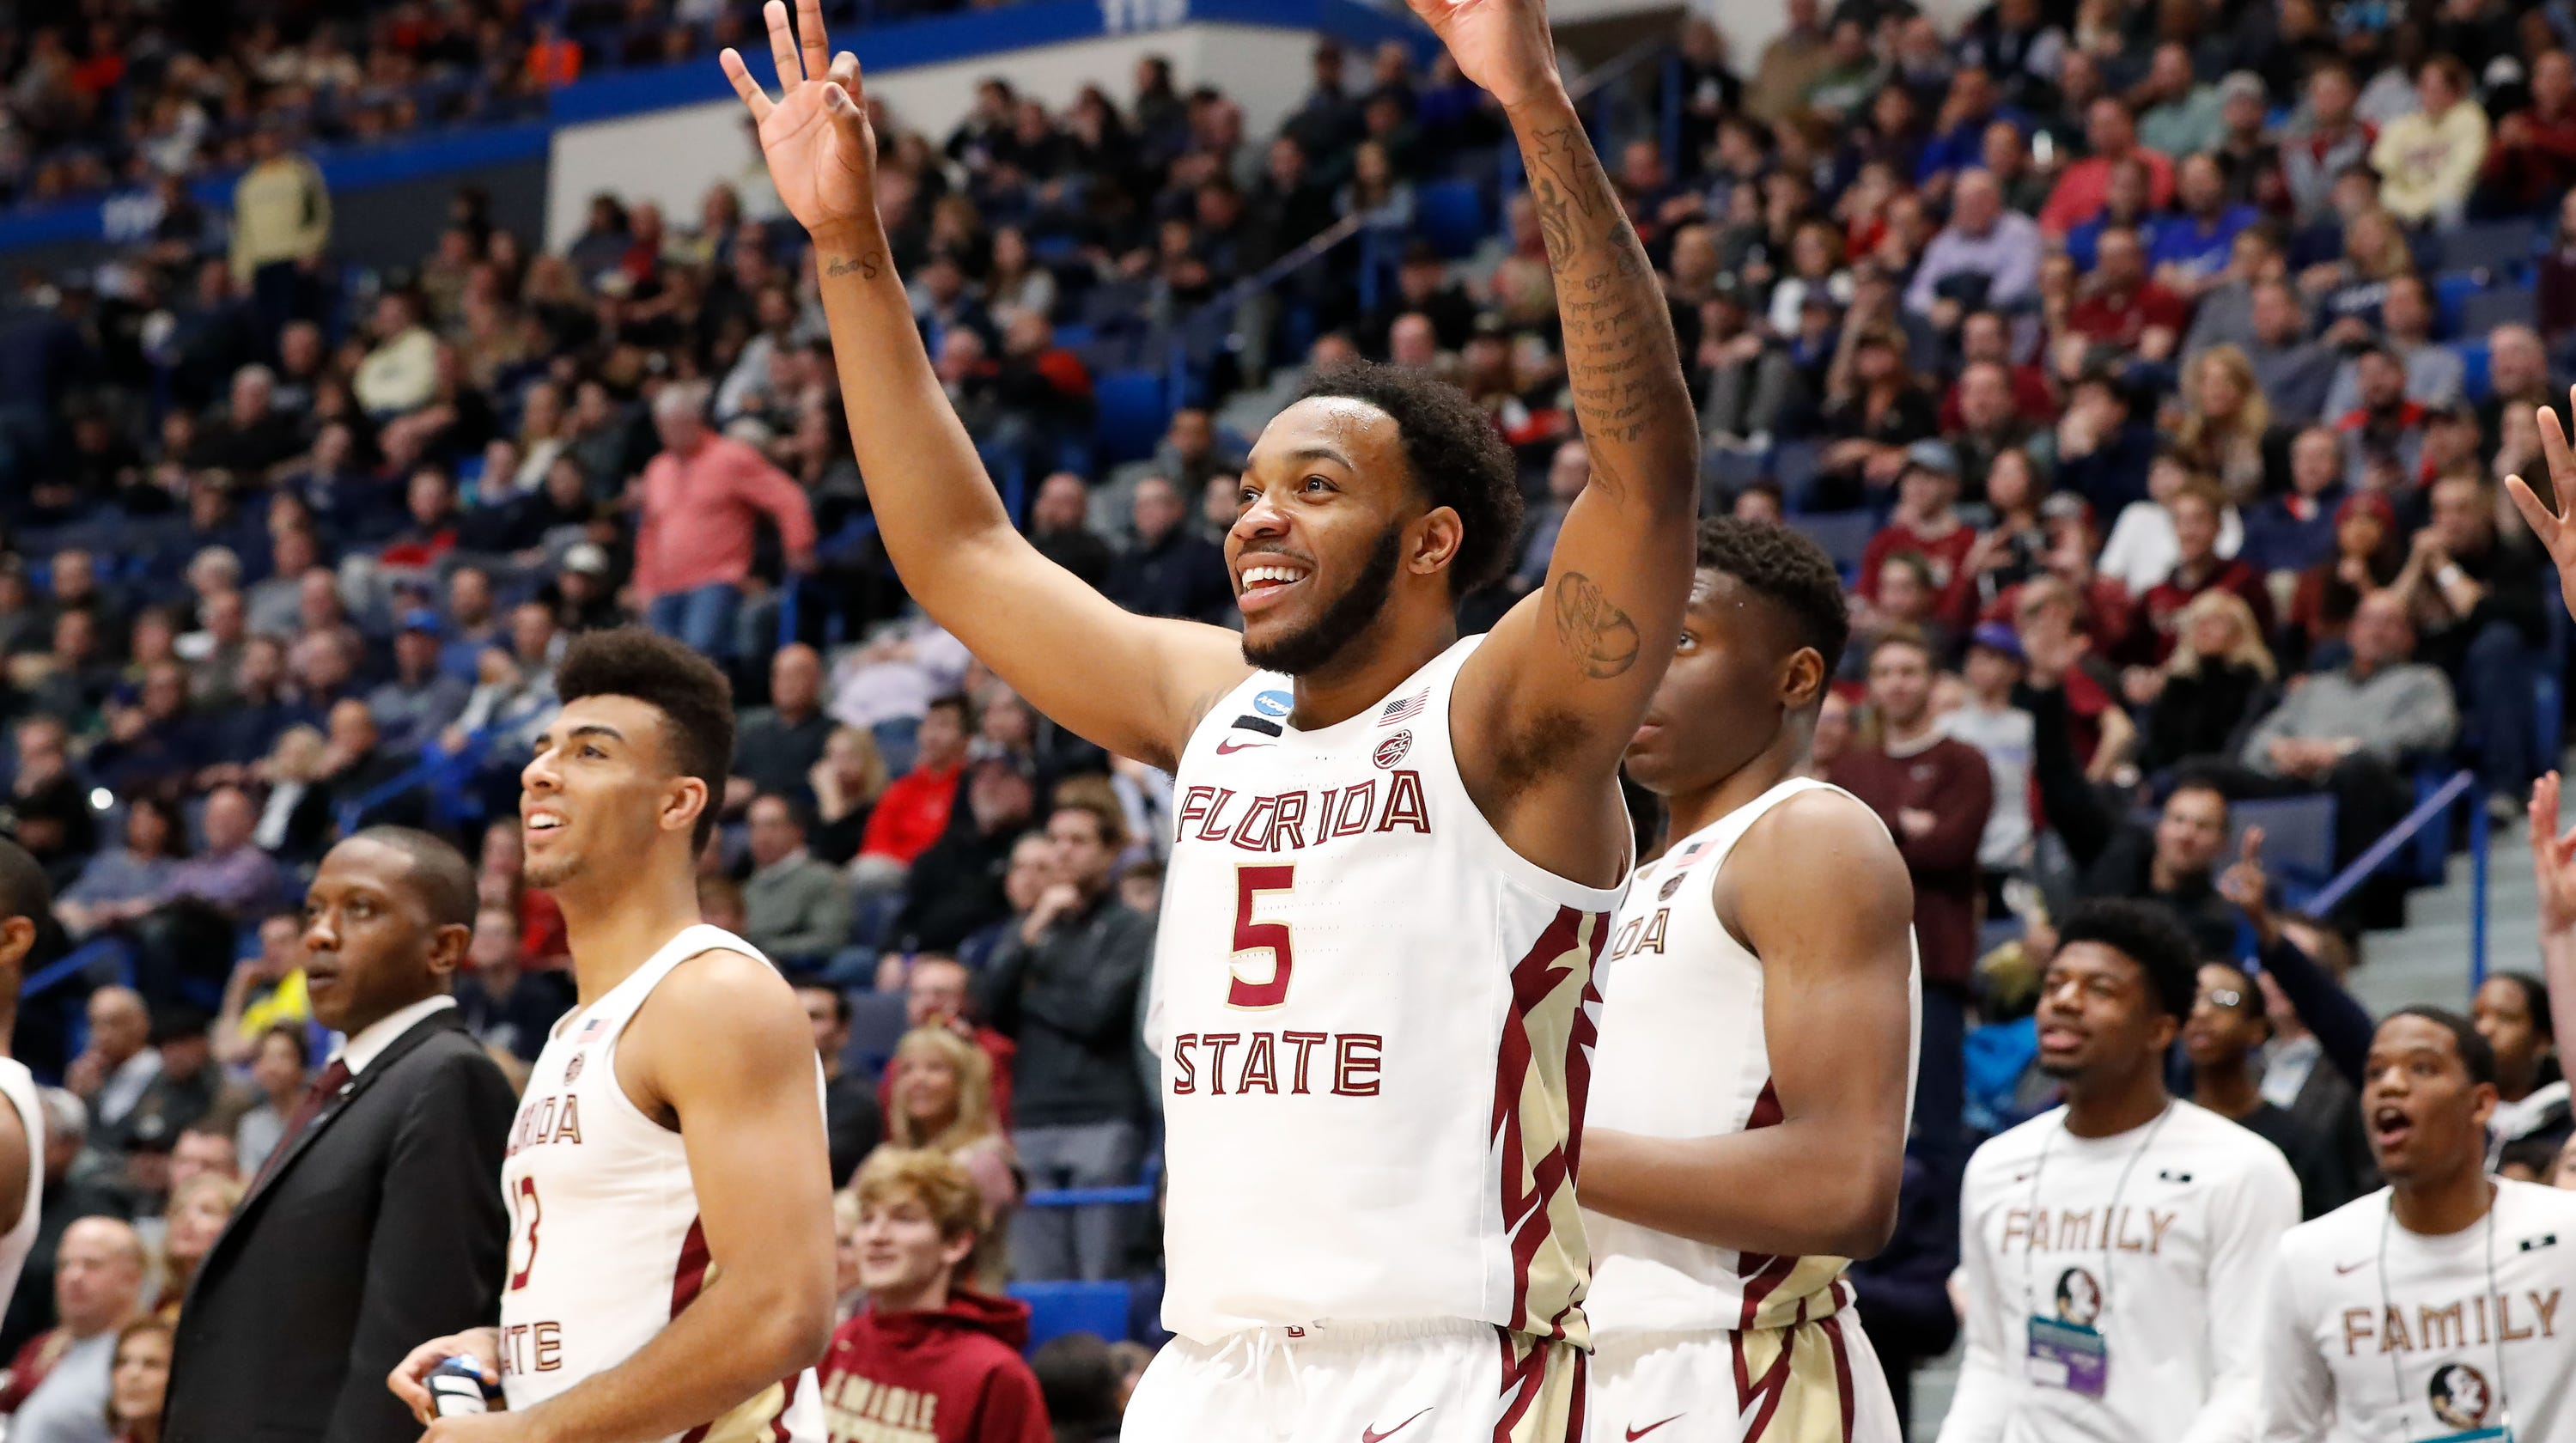 March Madness 2019: How To Watch Florida State Vs. Gonzaga